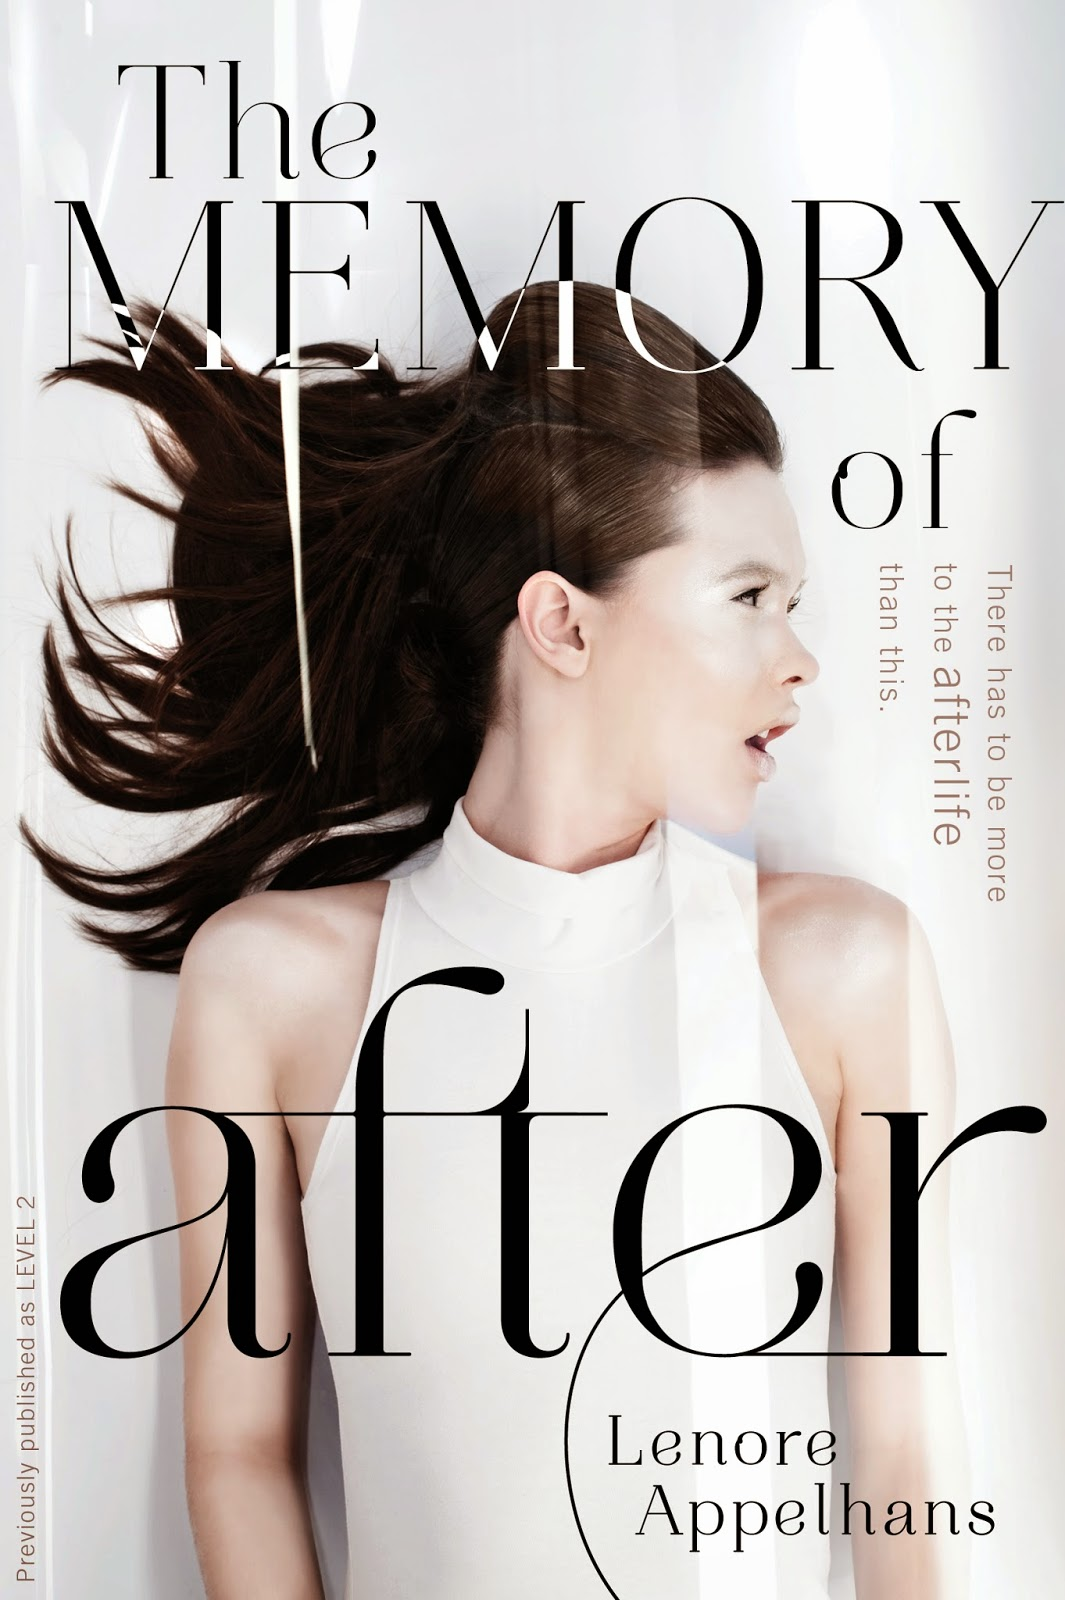 http://www.amazon.com/Memory-After-Chronicles-ebook/dp/B00BSAOLYW/ref=asap_bc?ie=UTF8